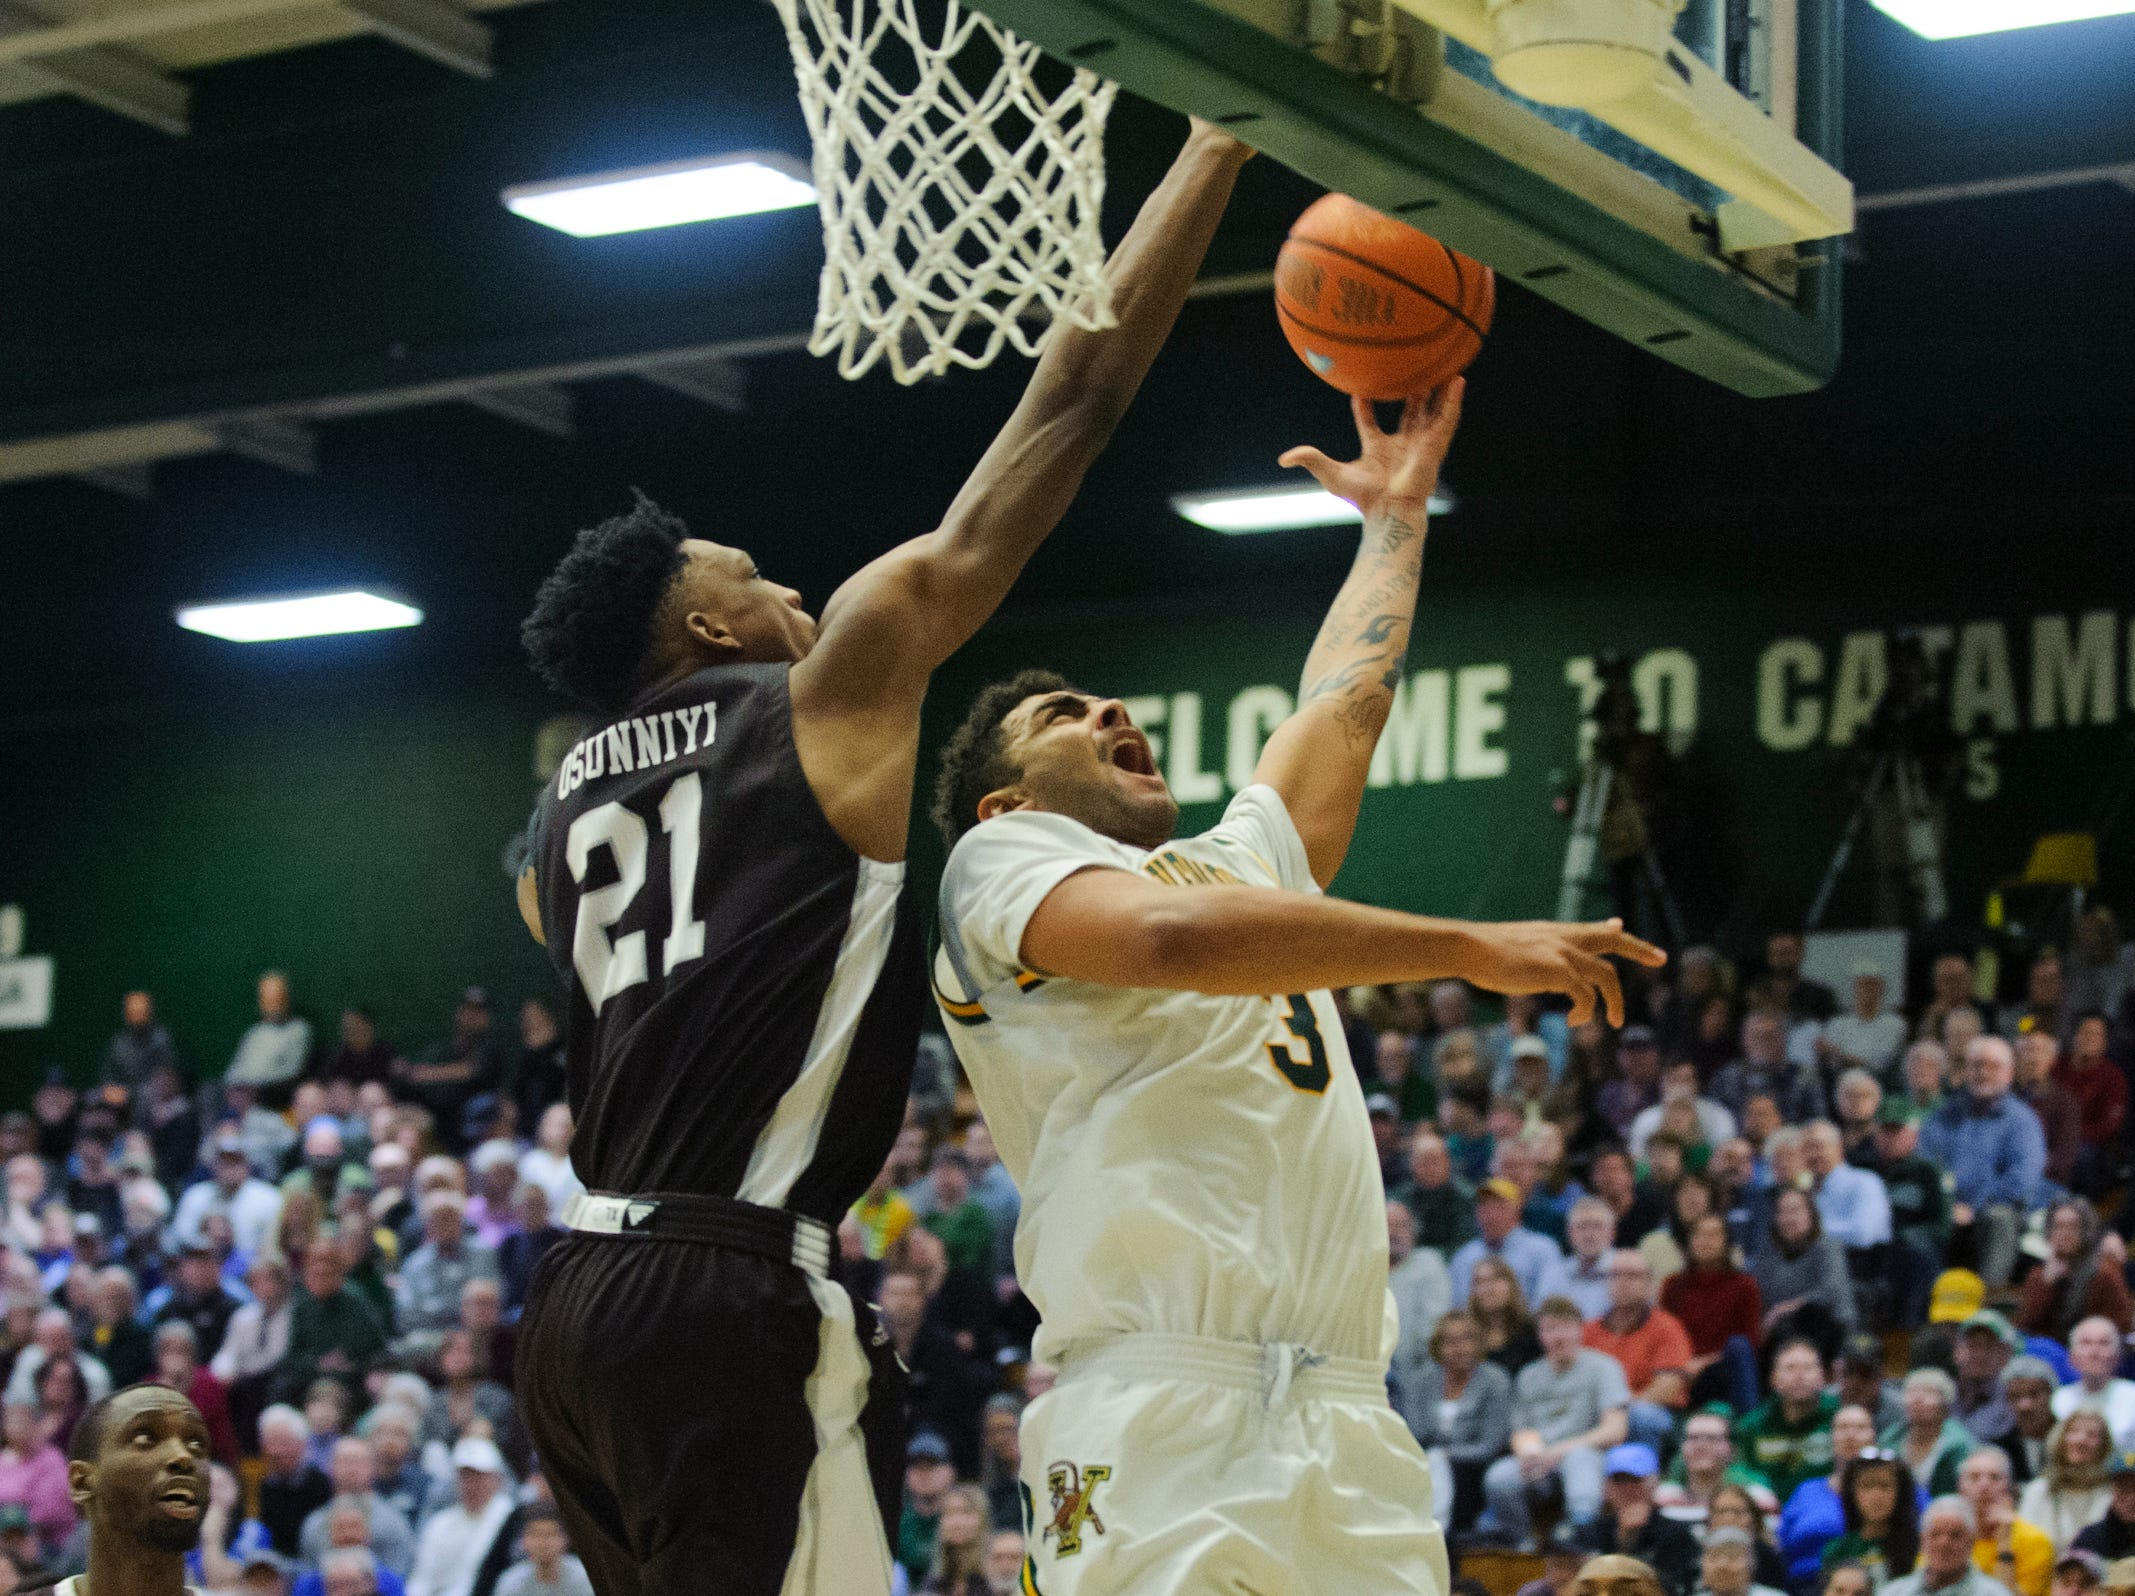 Vermont forward Anthony Lamb (3) leaps past St. Bonaventure's Osun Osunniyi (21) for a lay up during the men's basketball game between the St. Bonaventure Bonnies and the Vermont Catamounts at Patrick Gym on Tuesday night December 18, 2018 in Burlington.